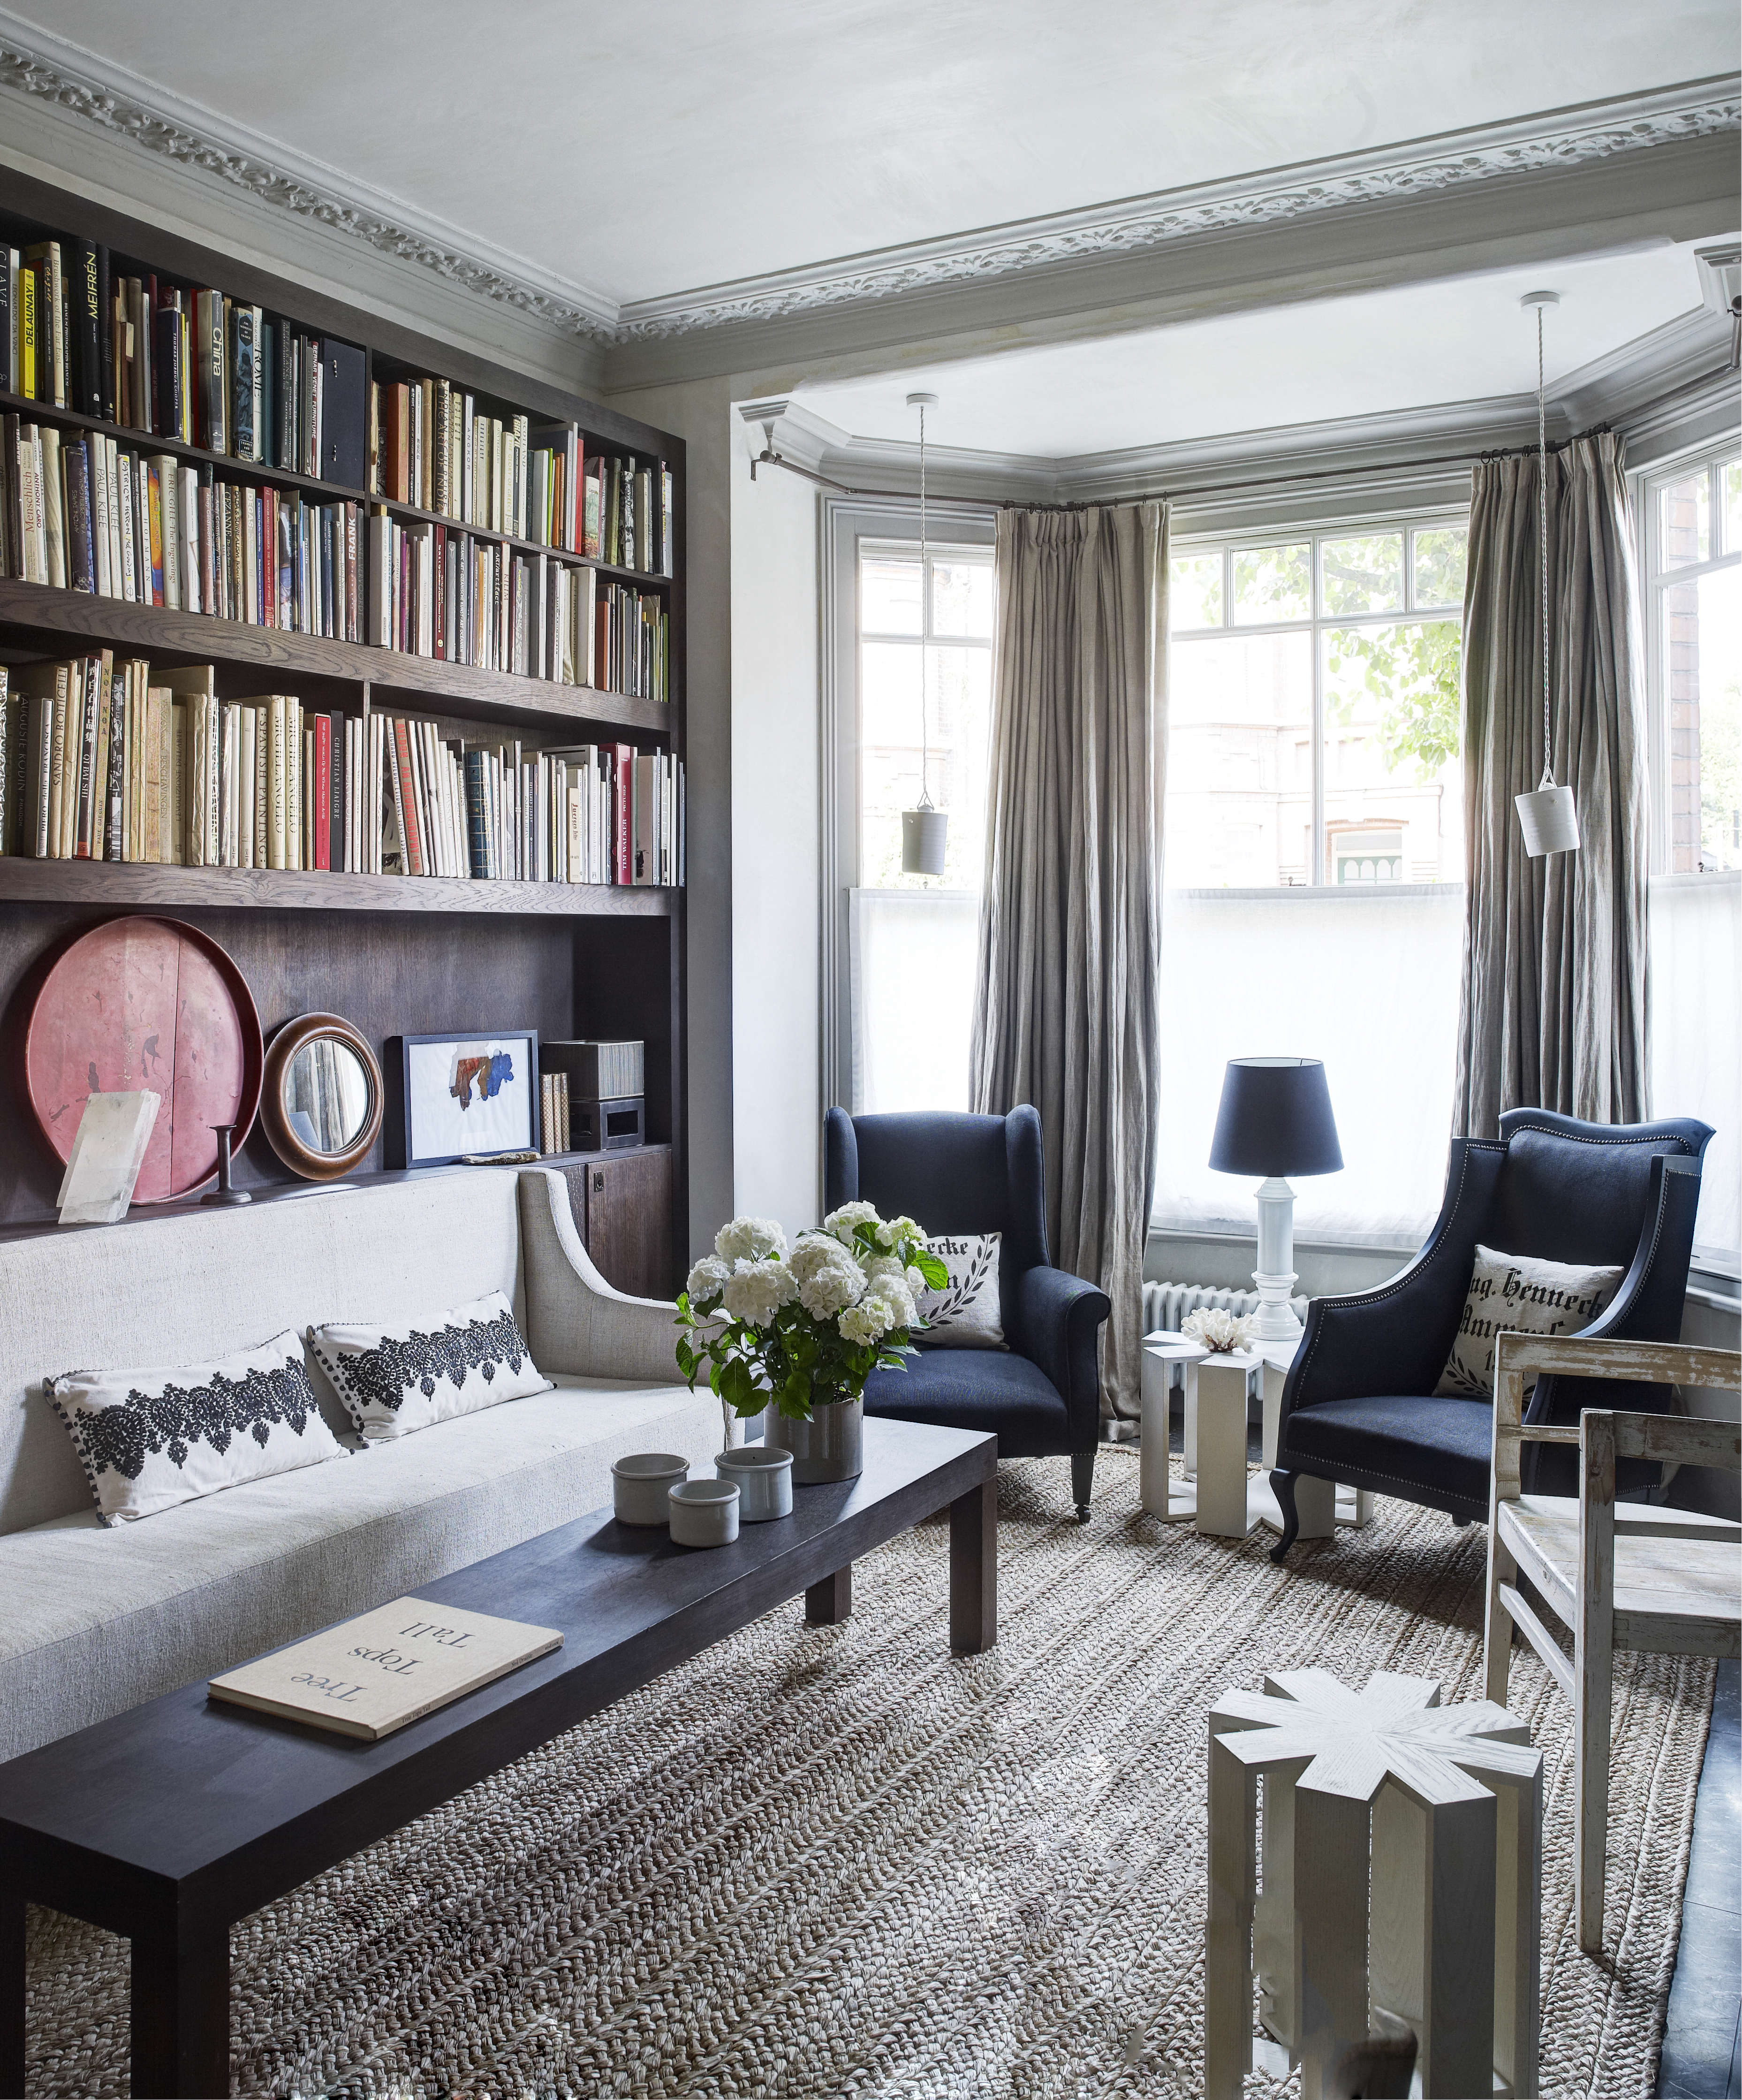 spencer fung london house by richard powers 16